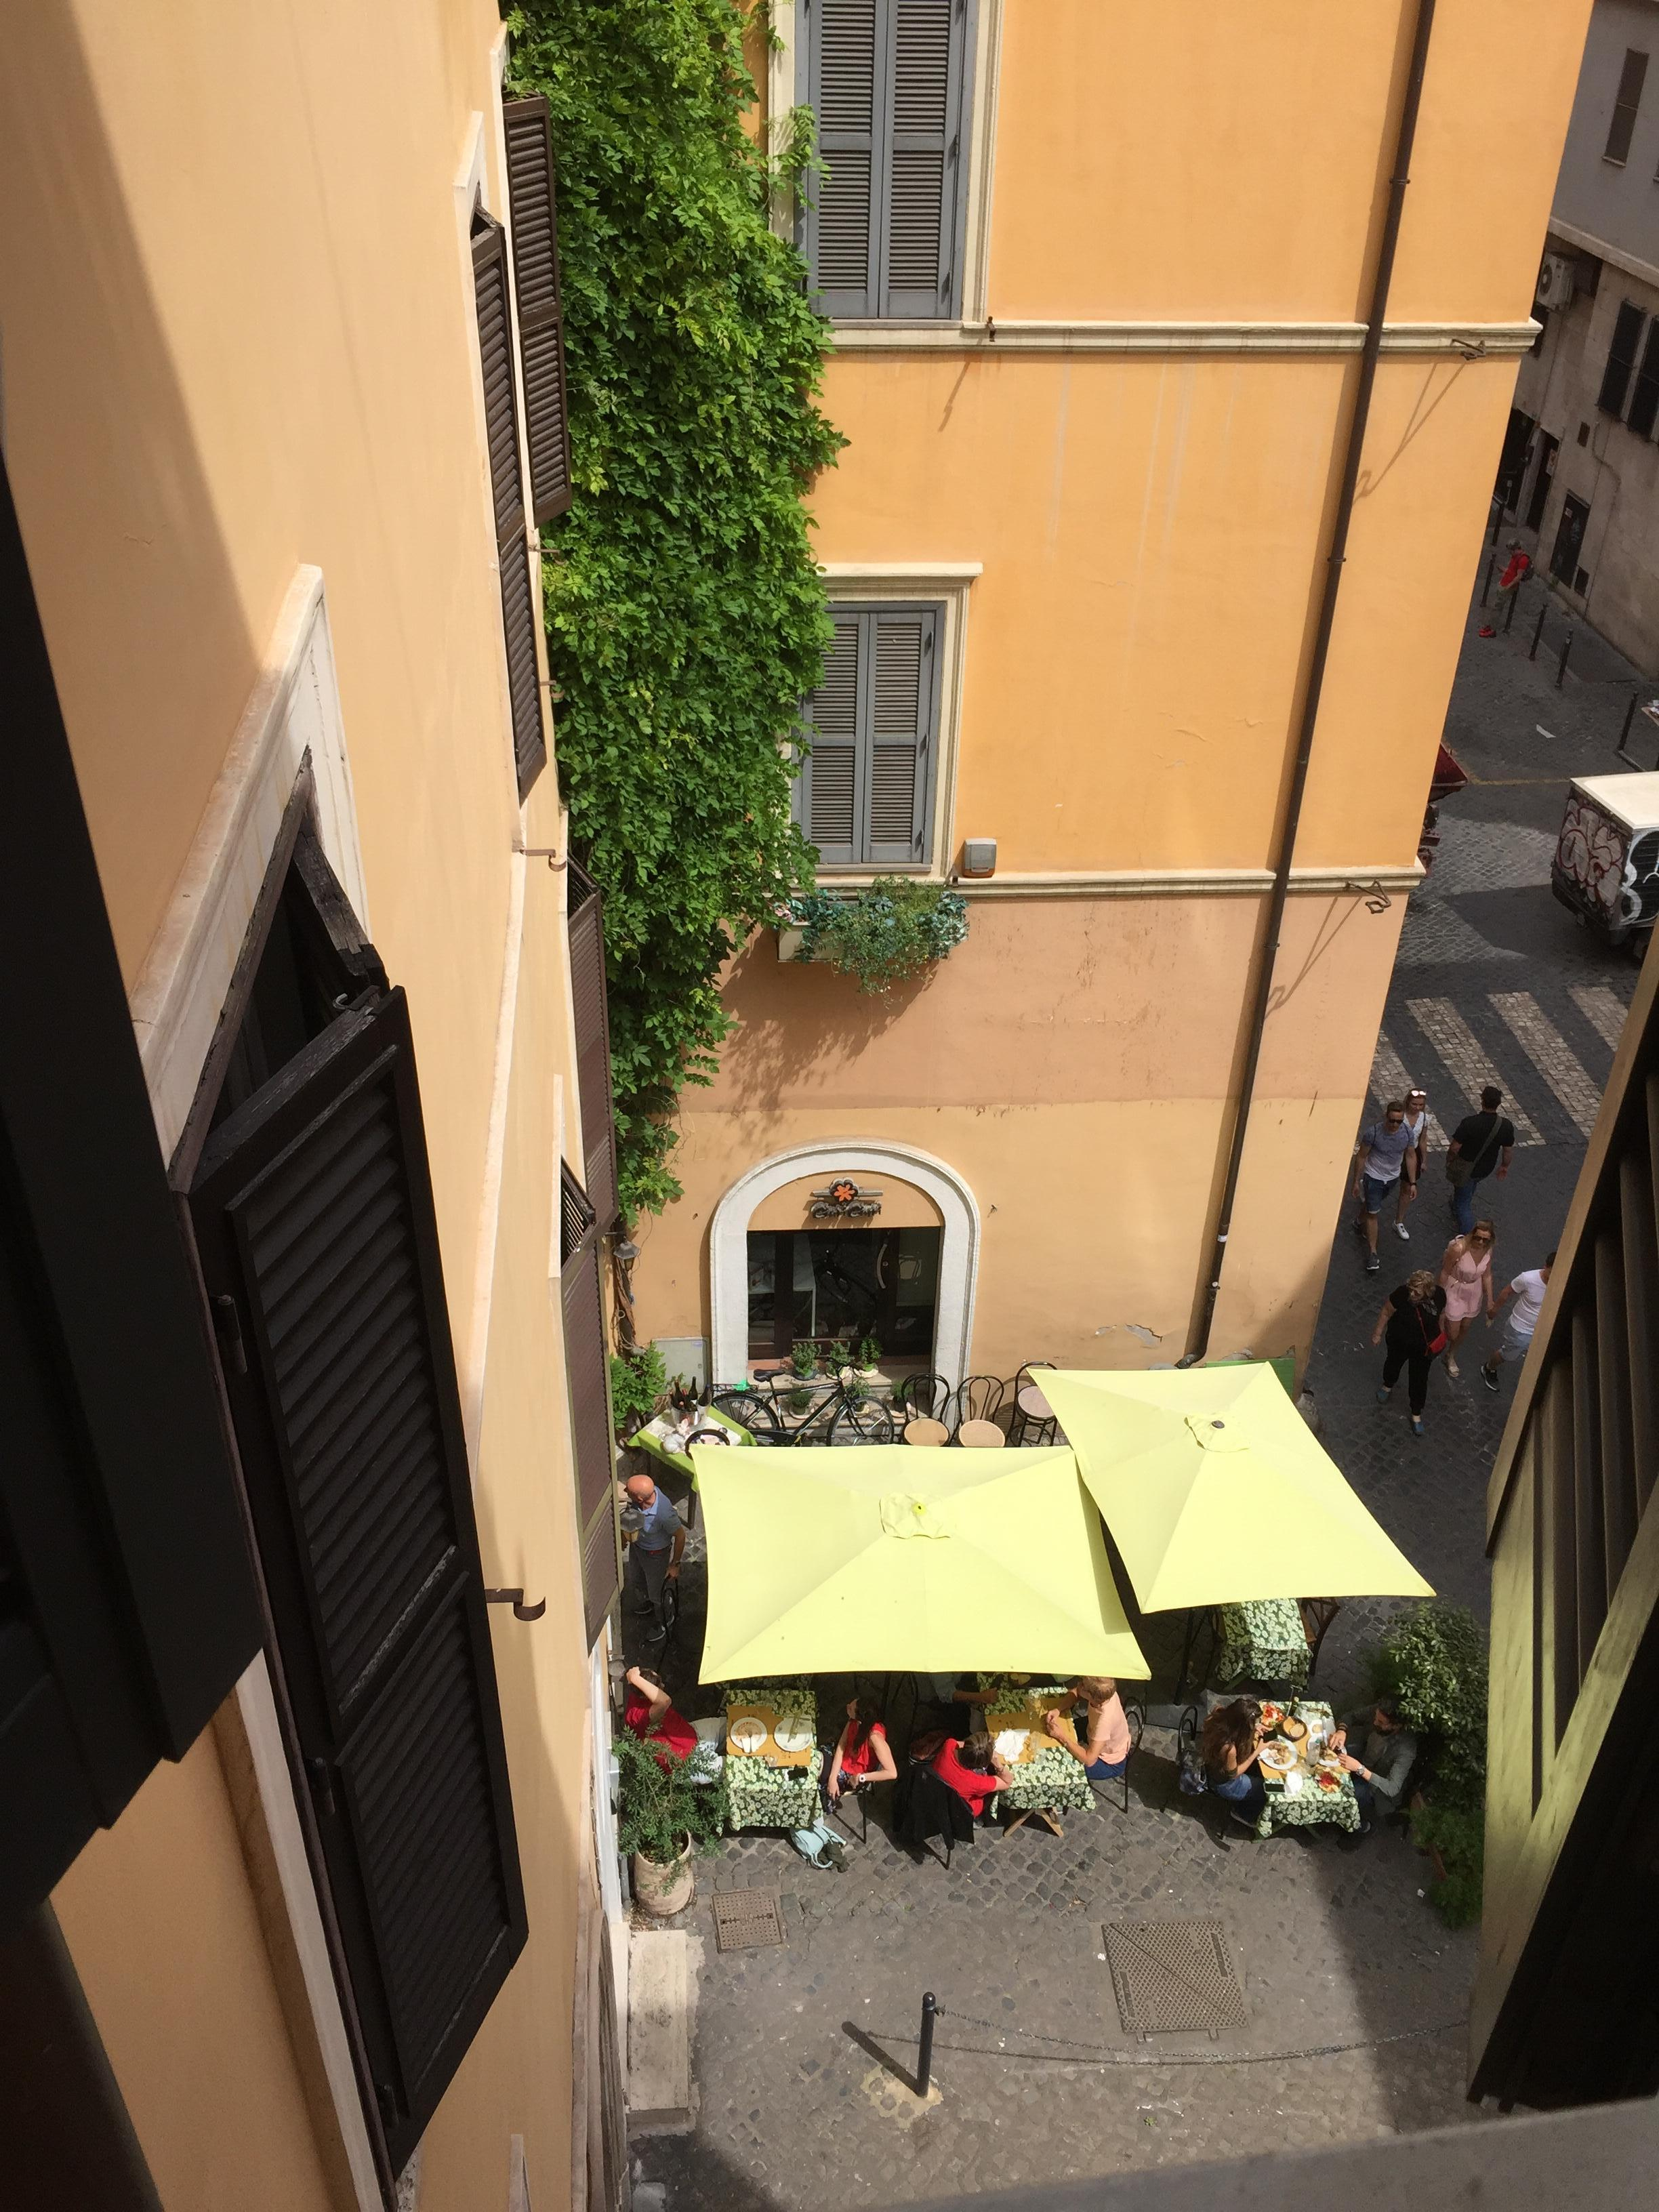 96a8e574ac6e The staff were amazing and the location is very good if one wants to tour  Rome on foot. The room was very small